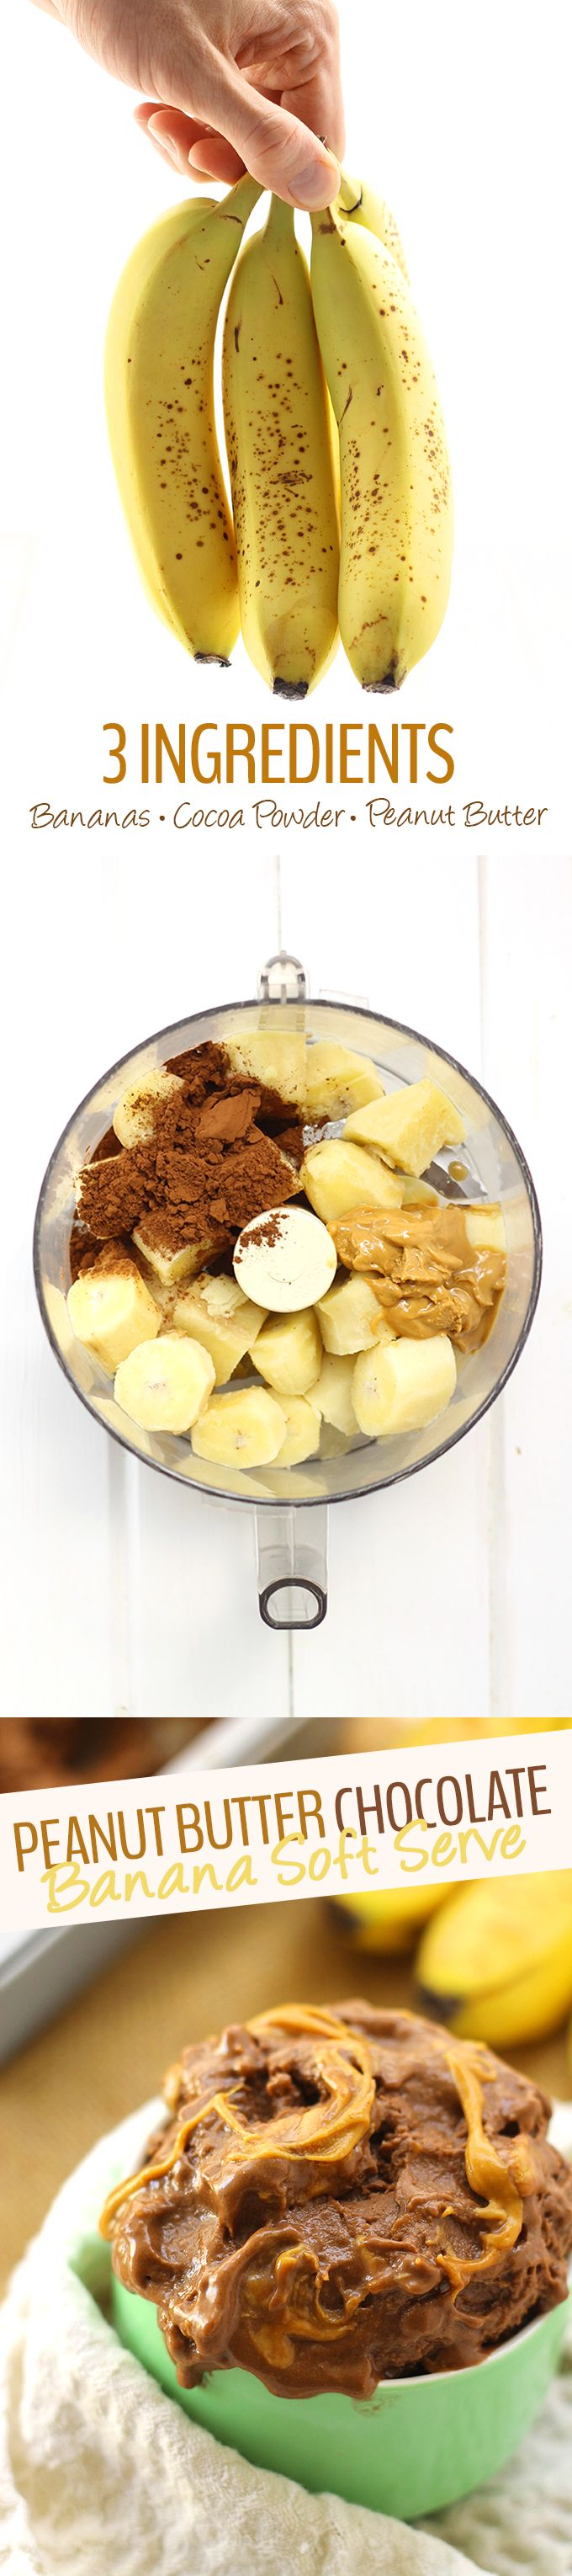 25+ best ideas about The healthy maven on Pinterest | Banana ice ...